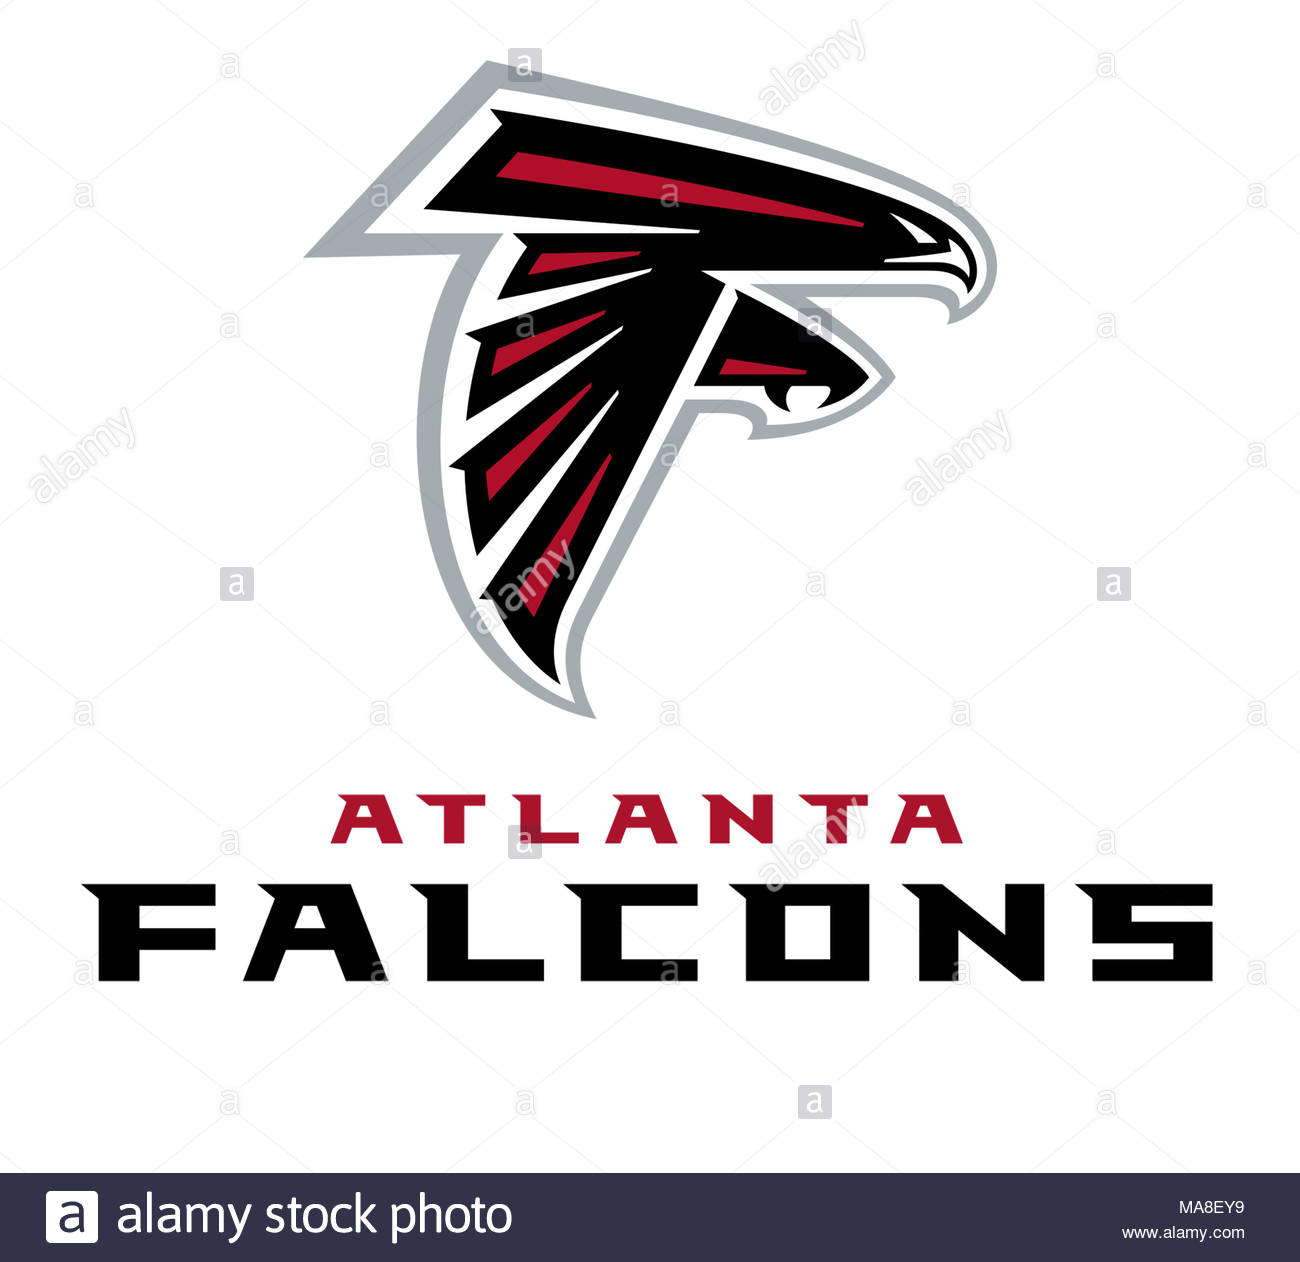 Atlanta Falcons Logo Icon Stock Photo 178437597 Alamy